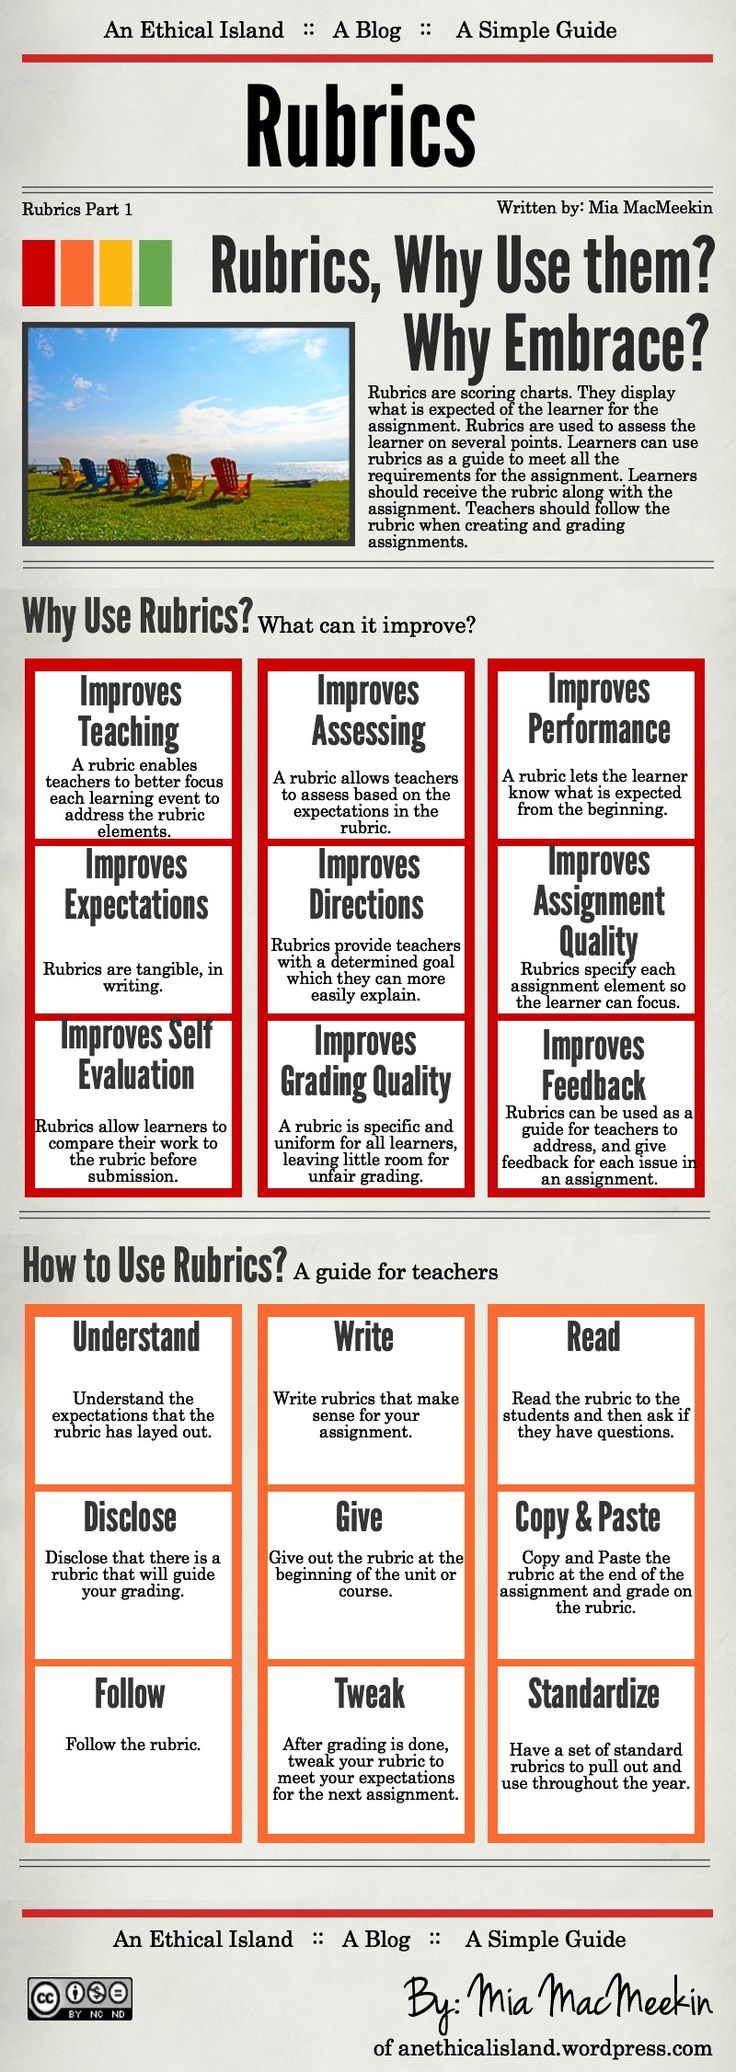 Rubrics, Why Use them? Why Embrace? #apits #edchat #elearning